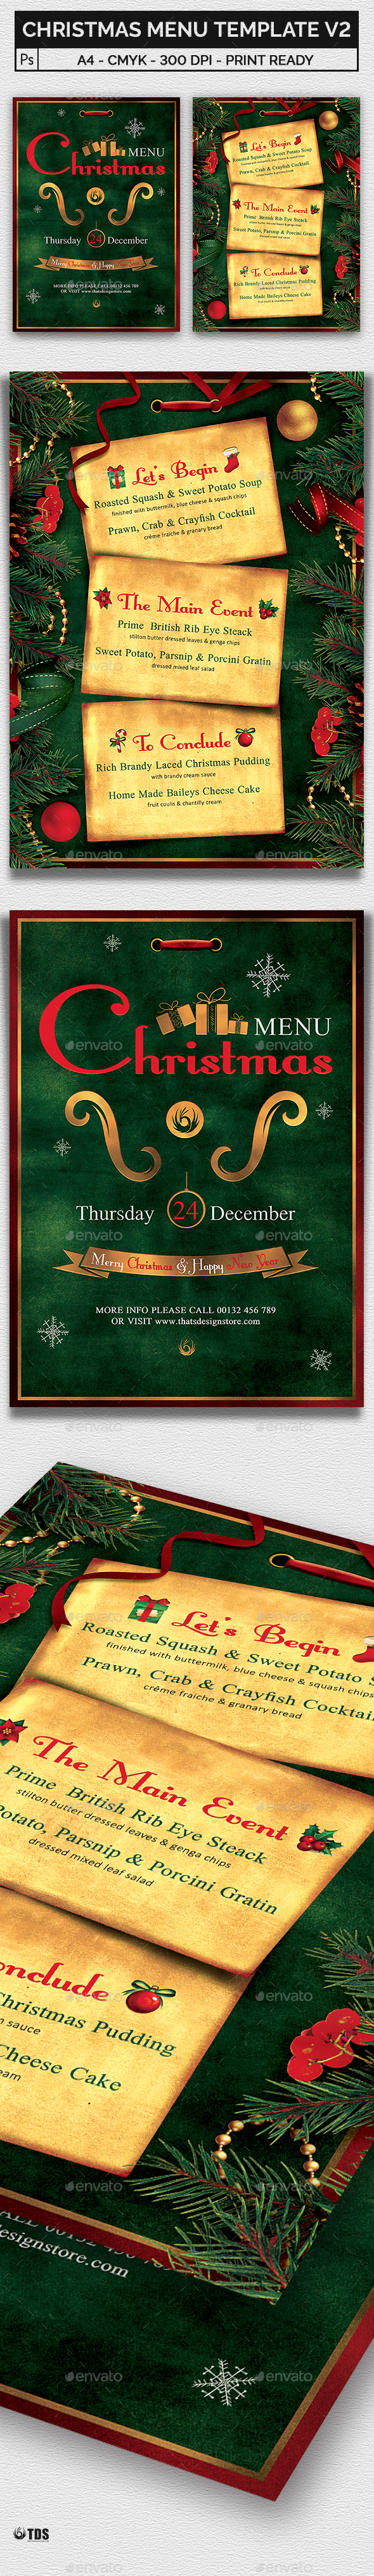 Christmas Menu Template V2 - Restaurant Flyers